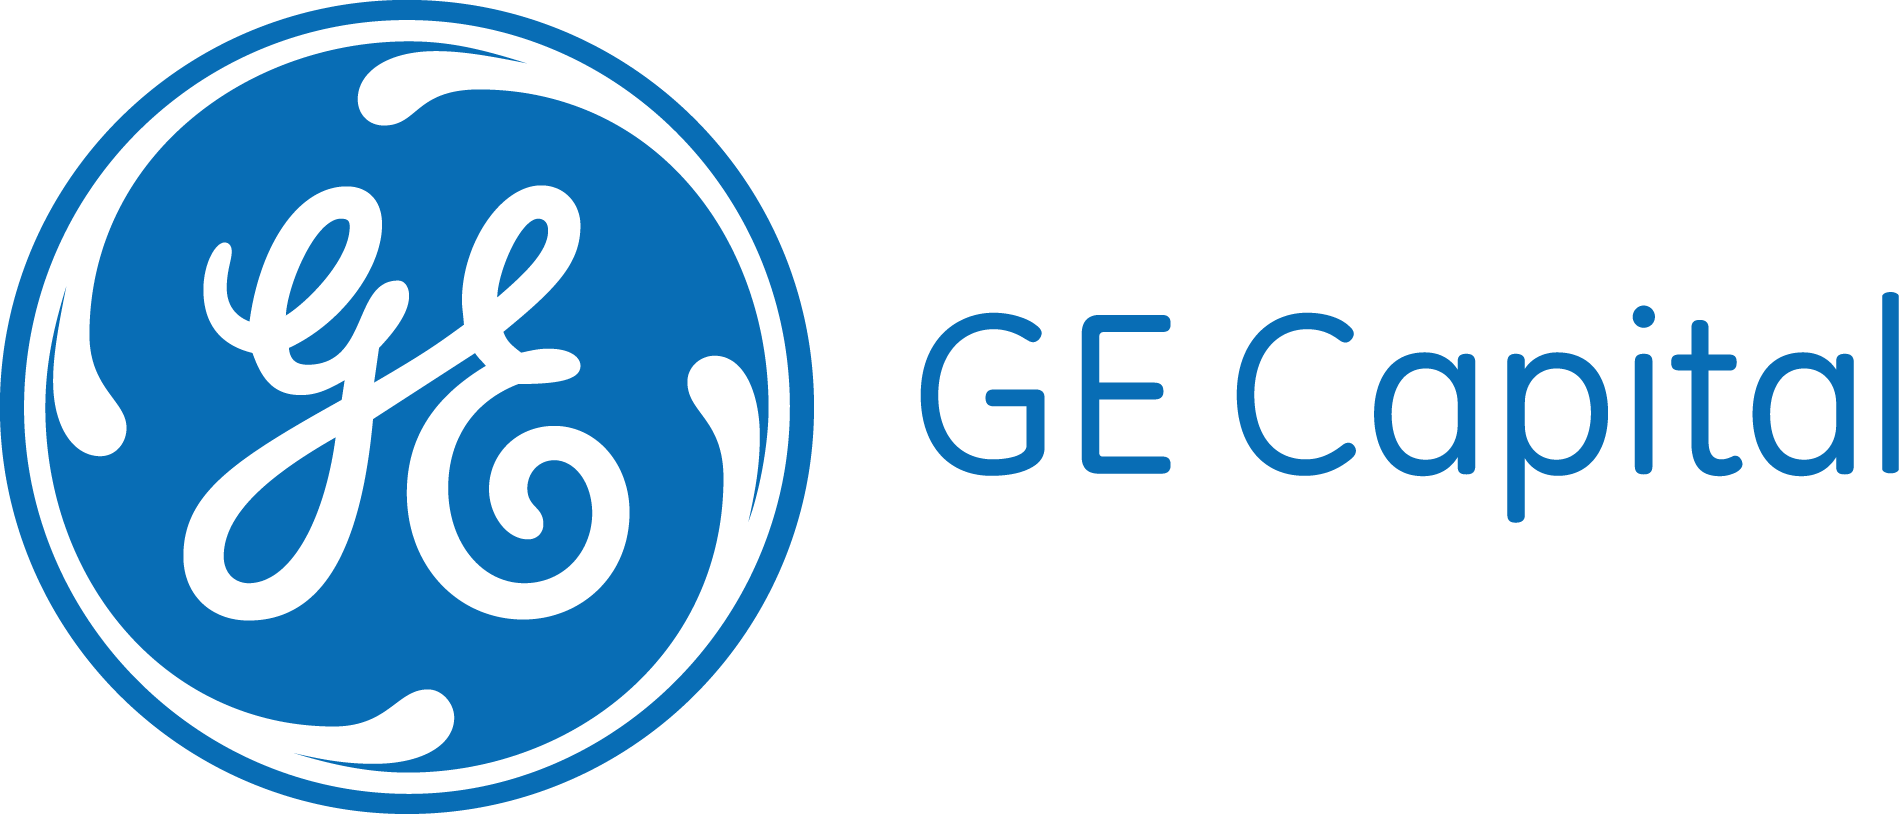 ge energy and ge healthcare Search job openings at ge healthcare 1,222 ge healthcare jobs including salaries, ratings, and reviews, posted by ge healthcare employees.